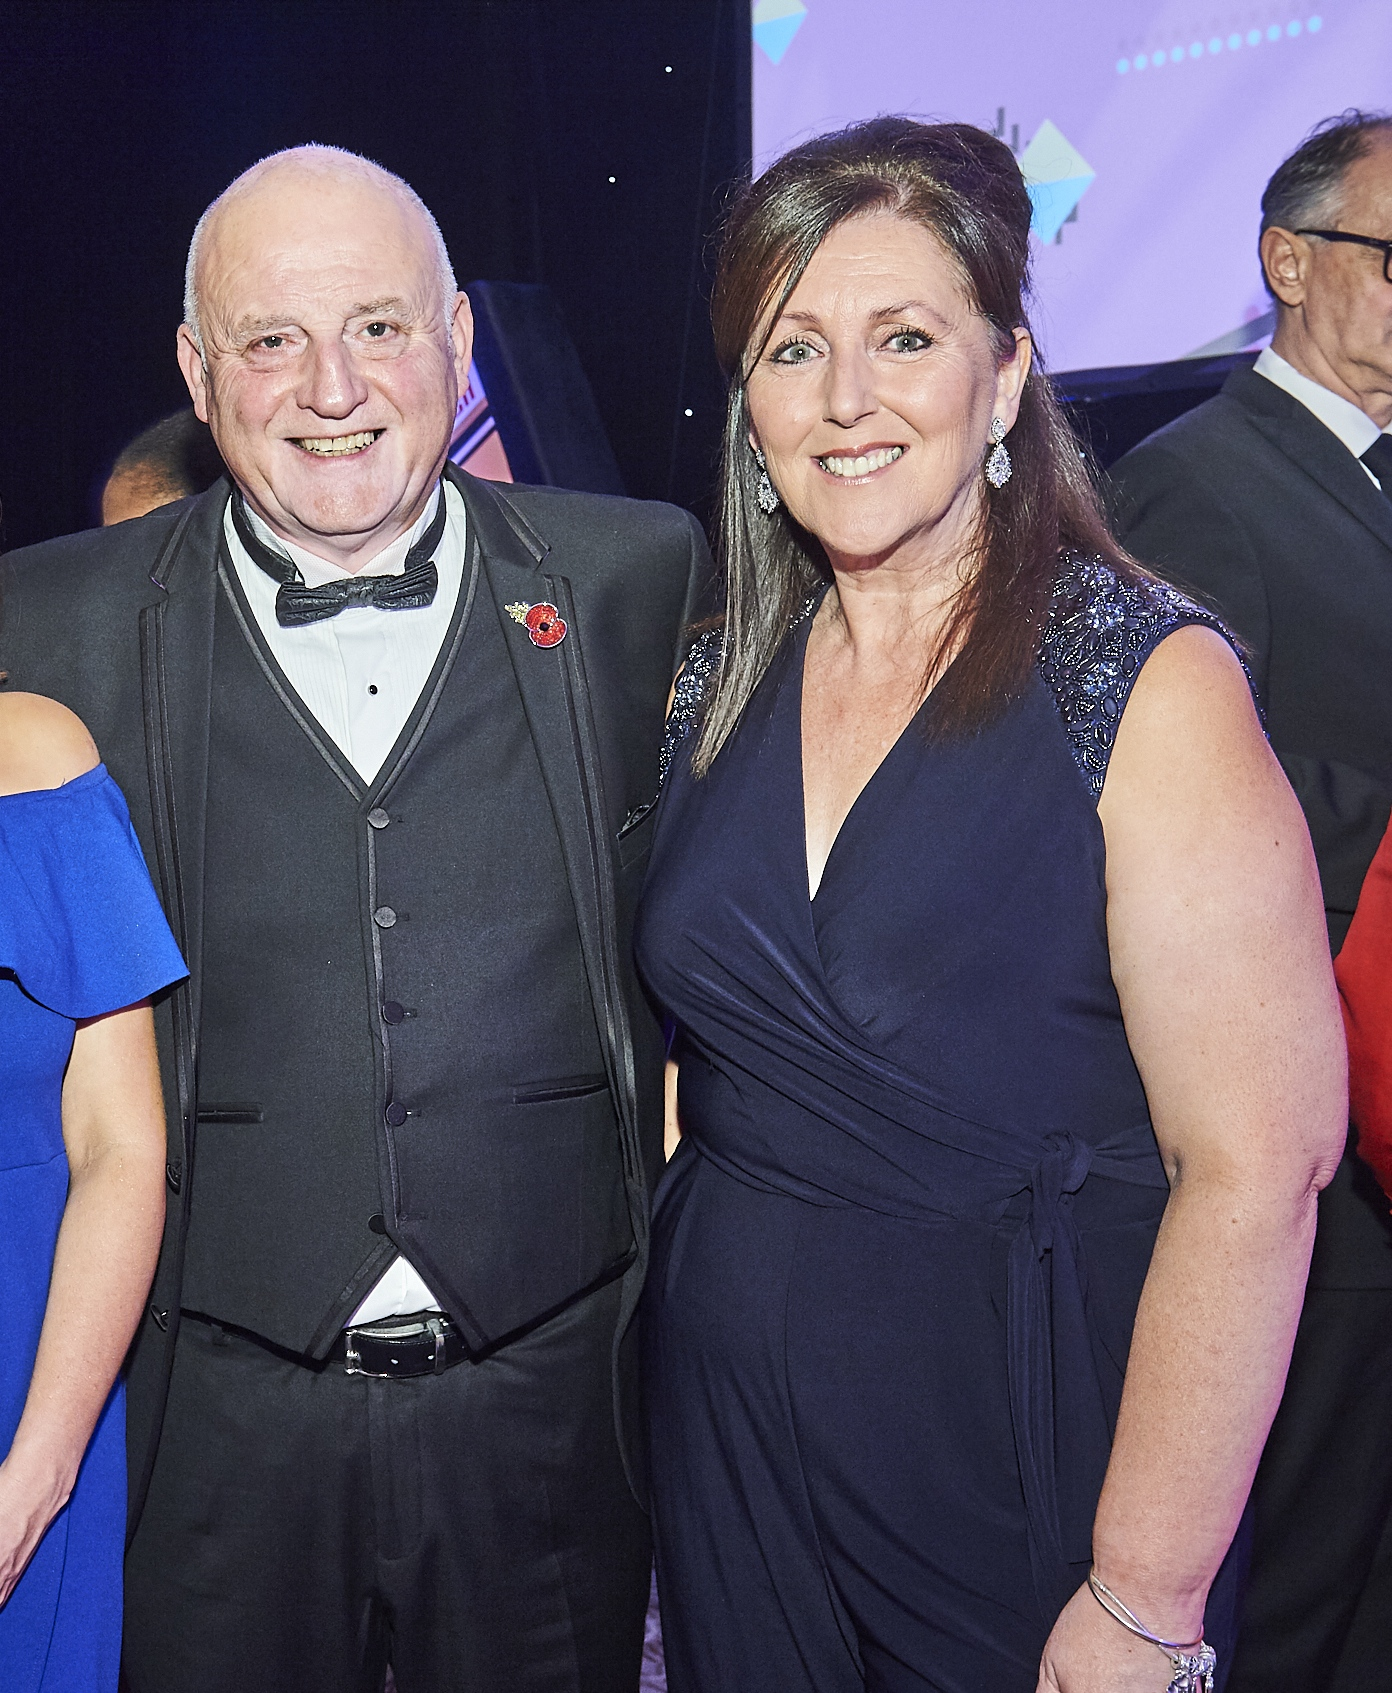 Above: Grass Roots International's Rob Brown and Lisa Ardren at last year's Henries awards event.